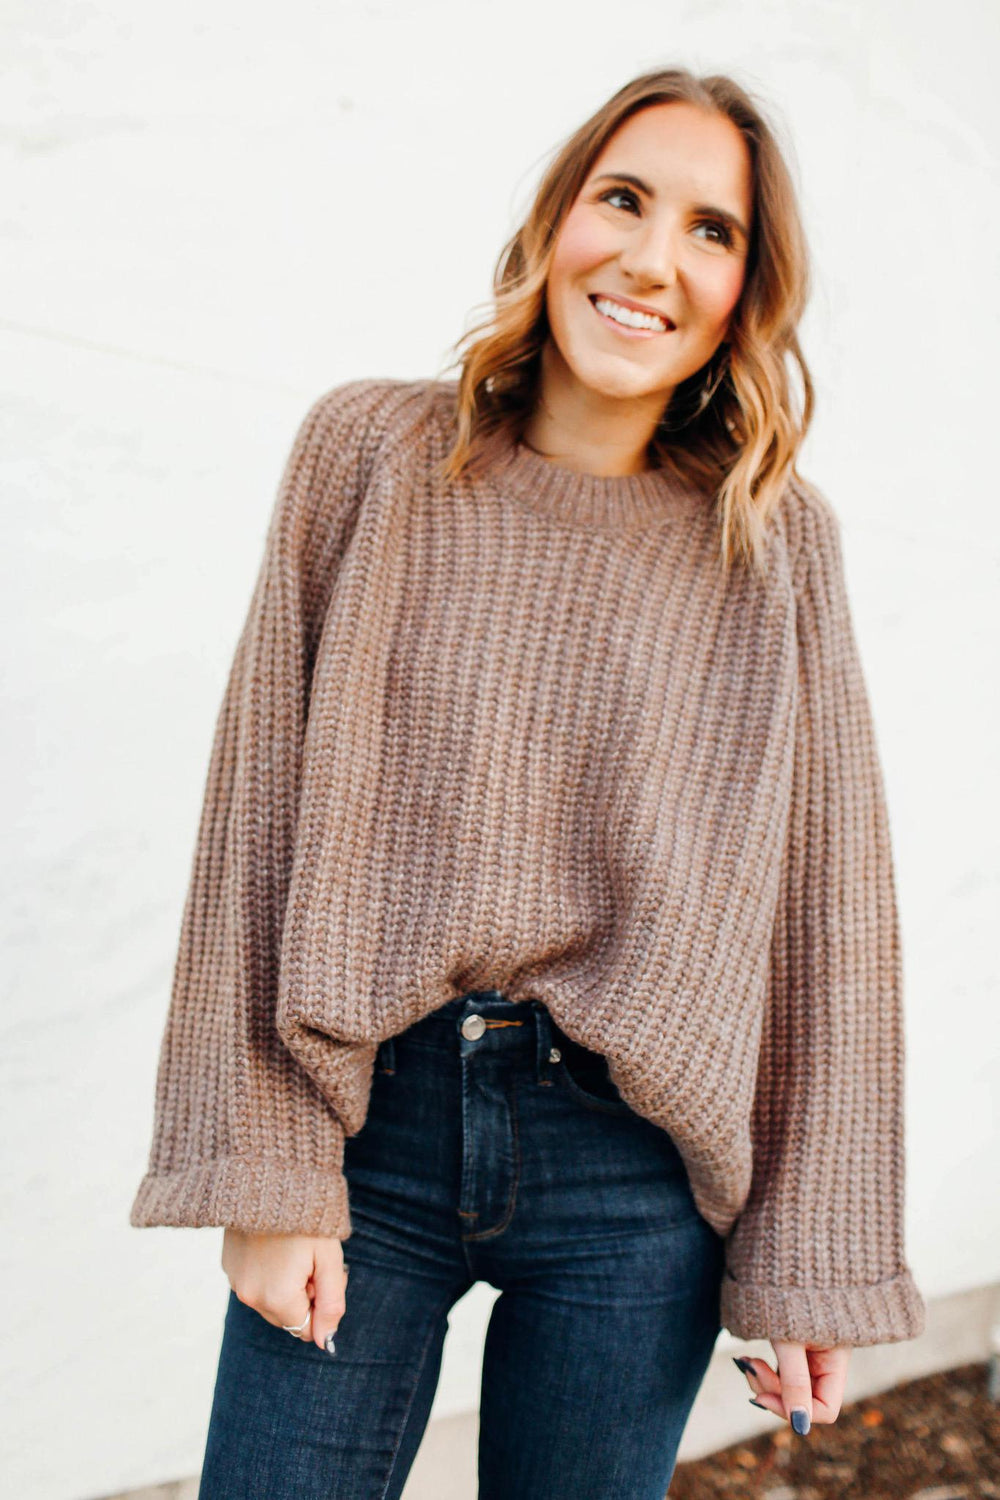 Mocha Cropped Sweater Inspired By Ashley from Twenties Girl Style